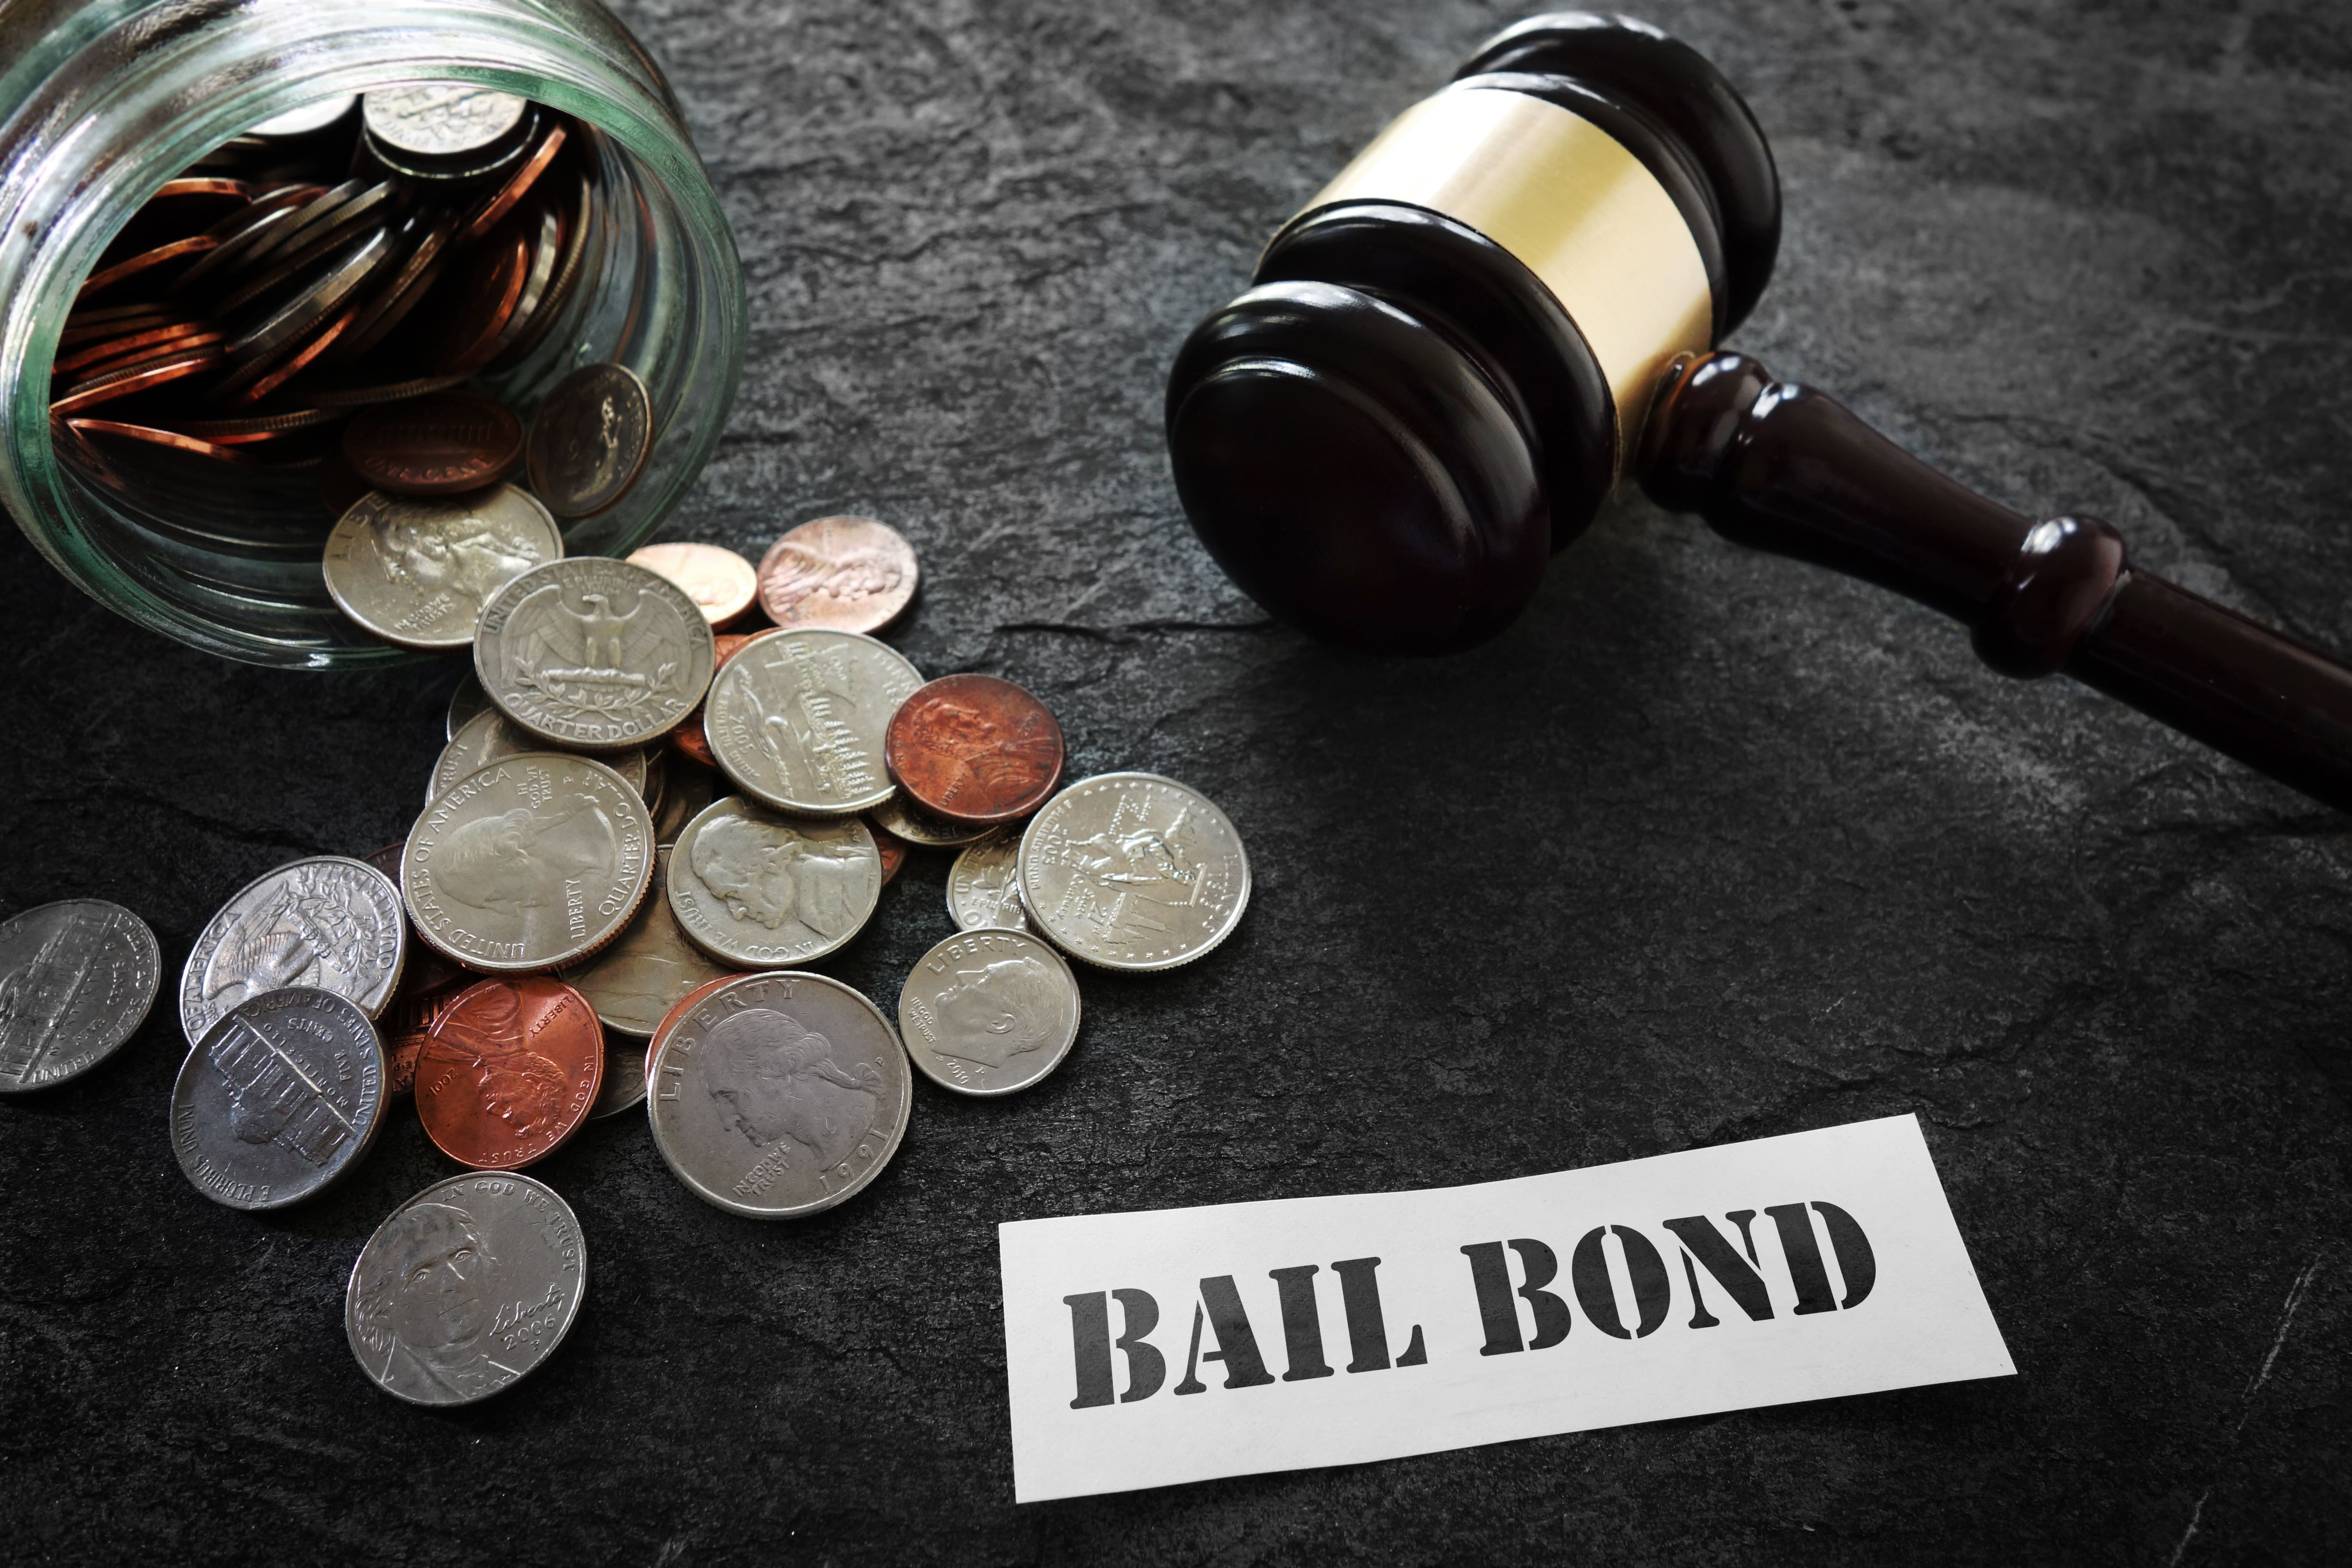 How to Get Out of Jail Legally: All About Bail and Bonds